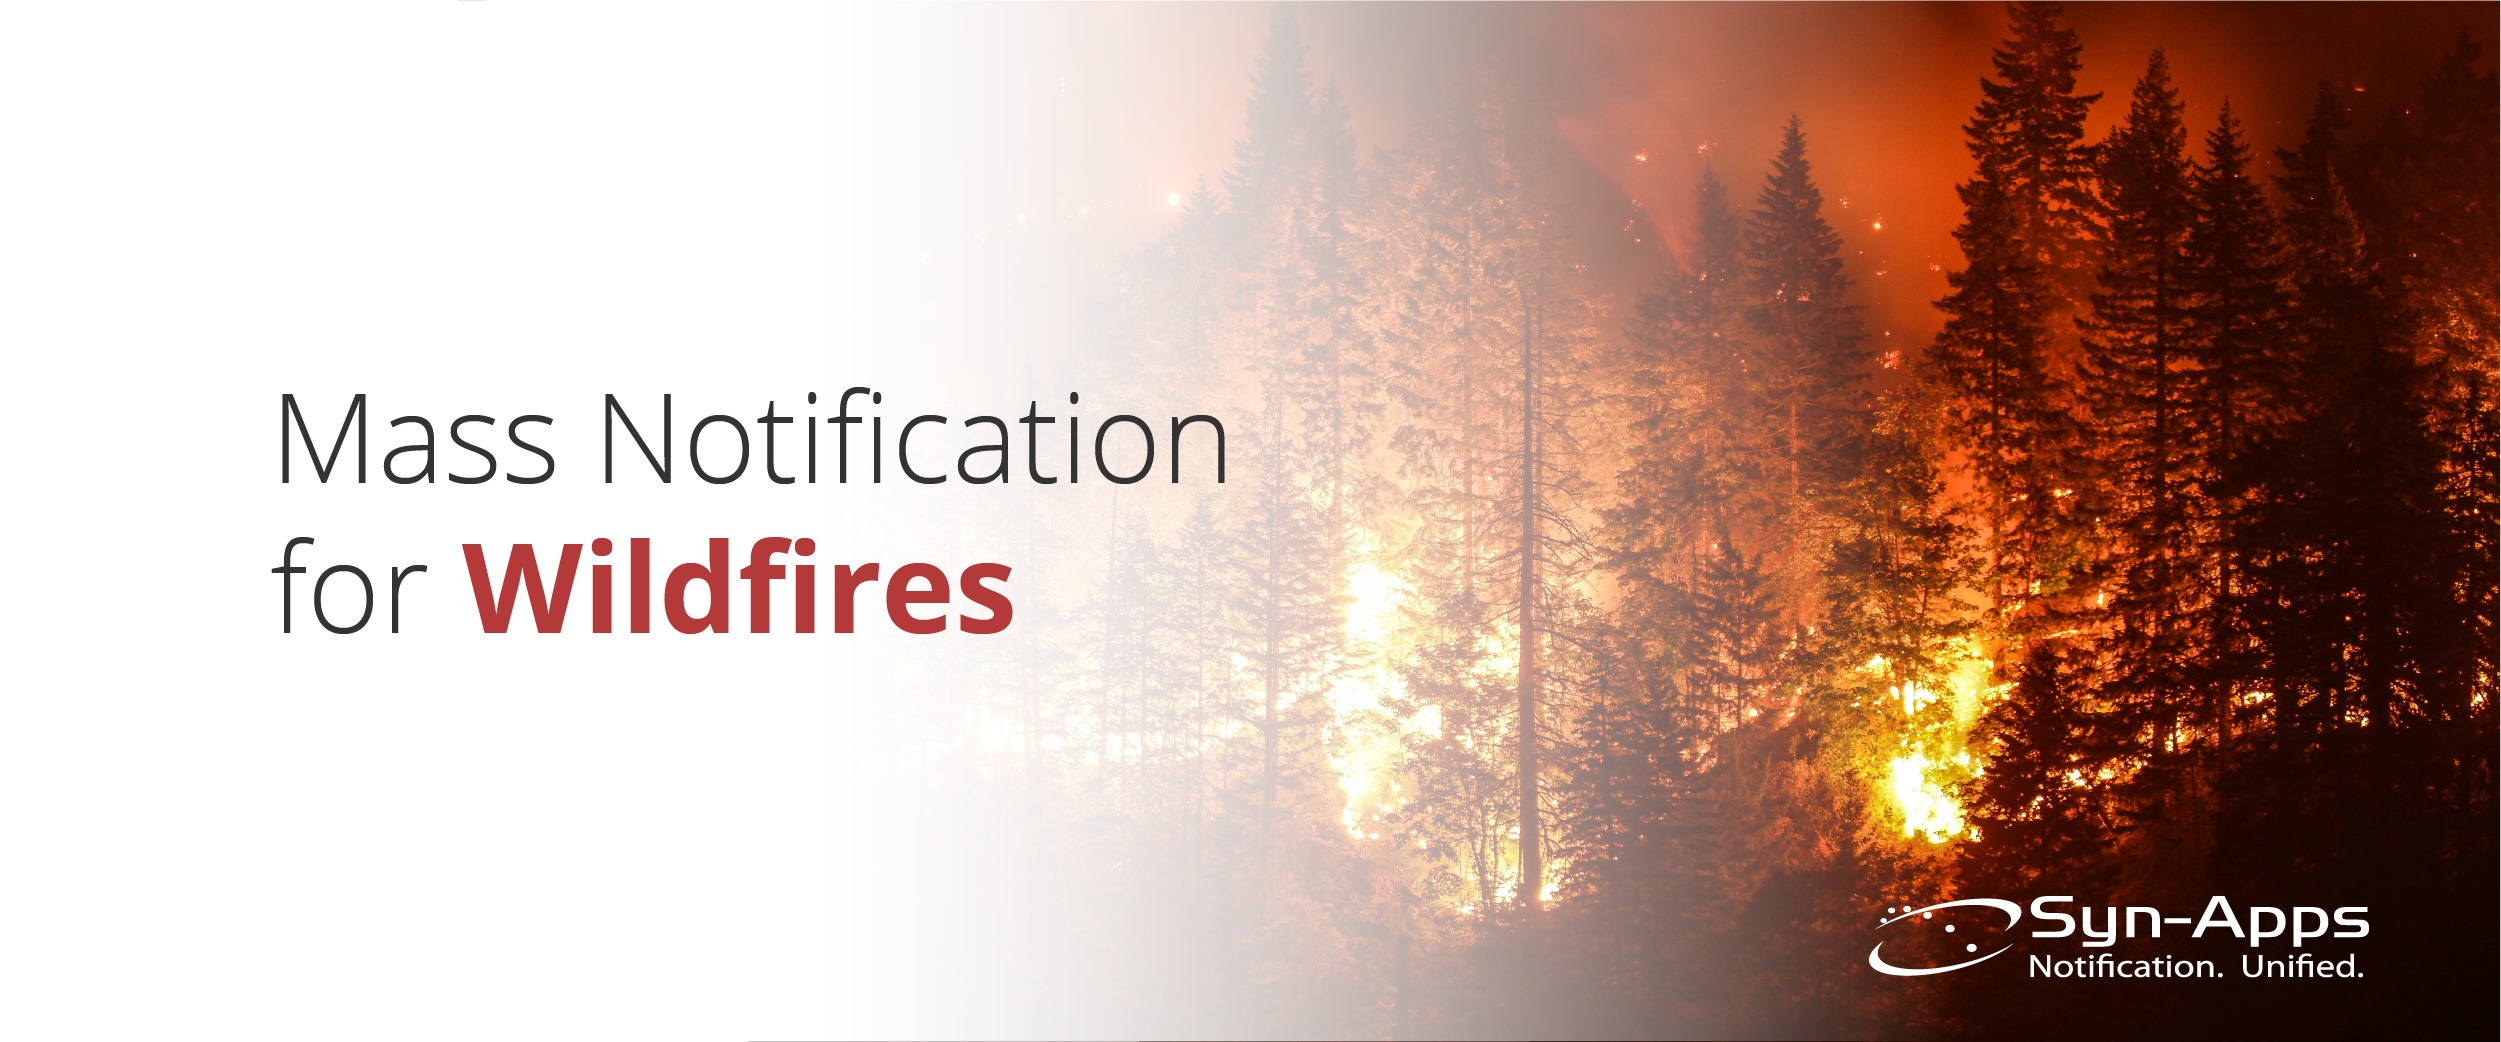 Mass Notification in Wildfires